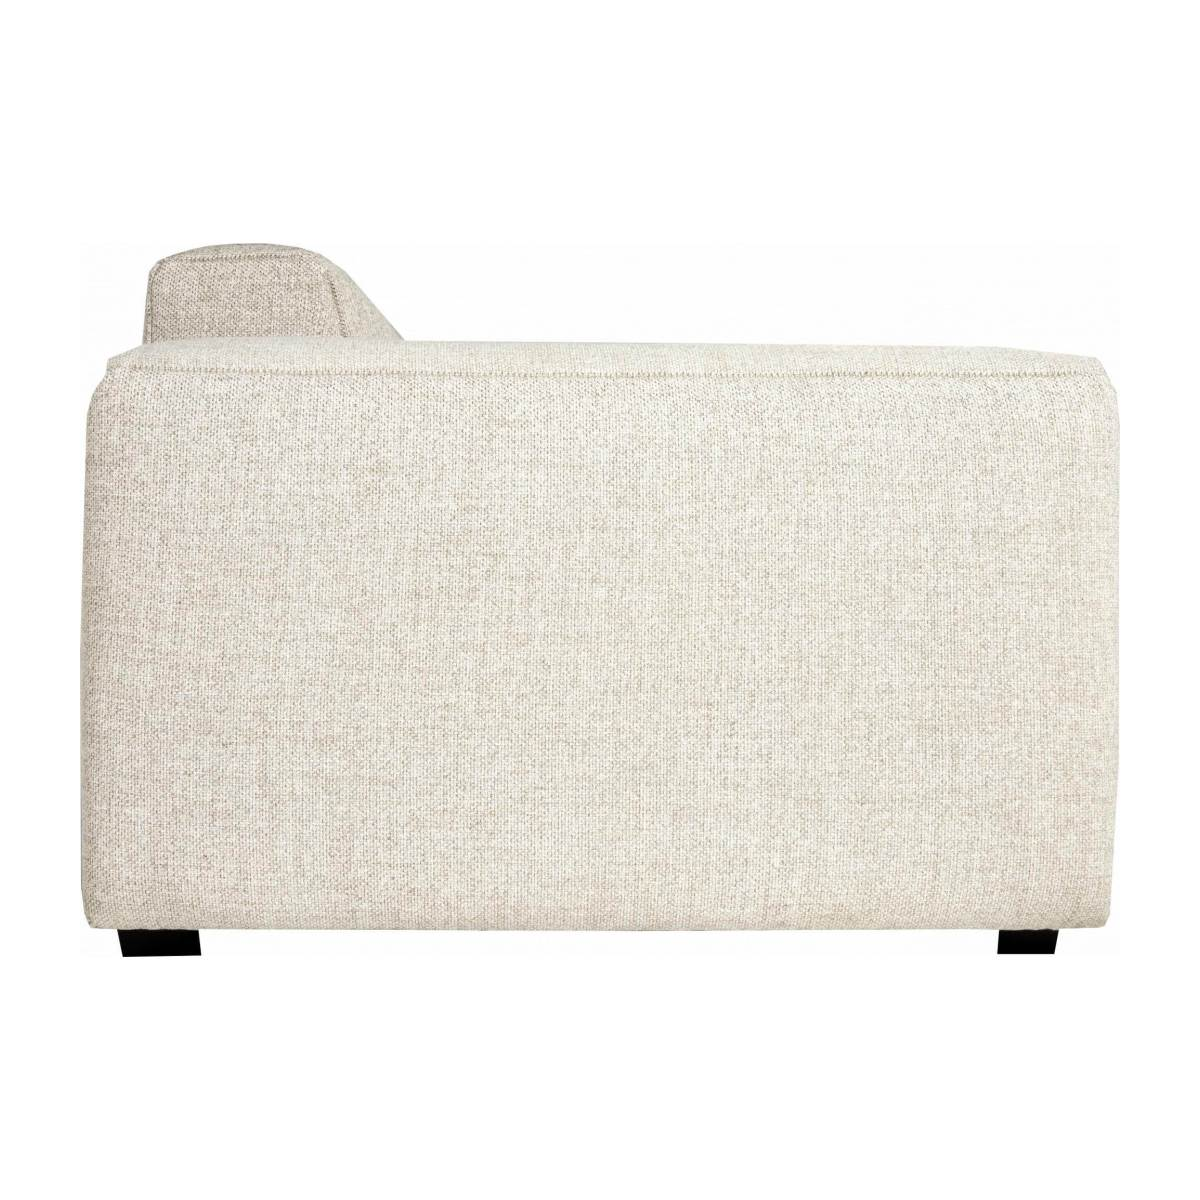 3 seater sofa in Lecce fabric, nature n°3